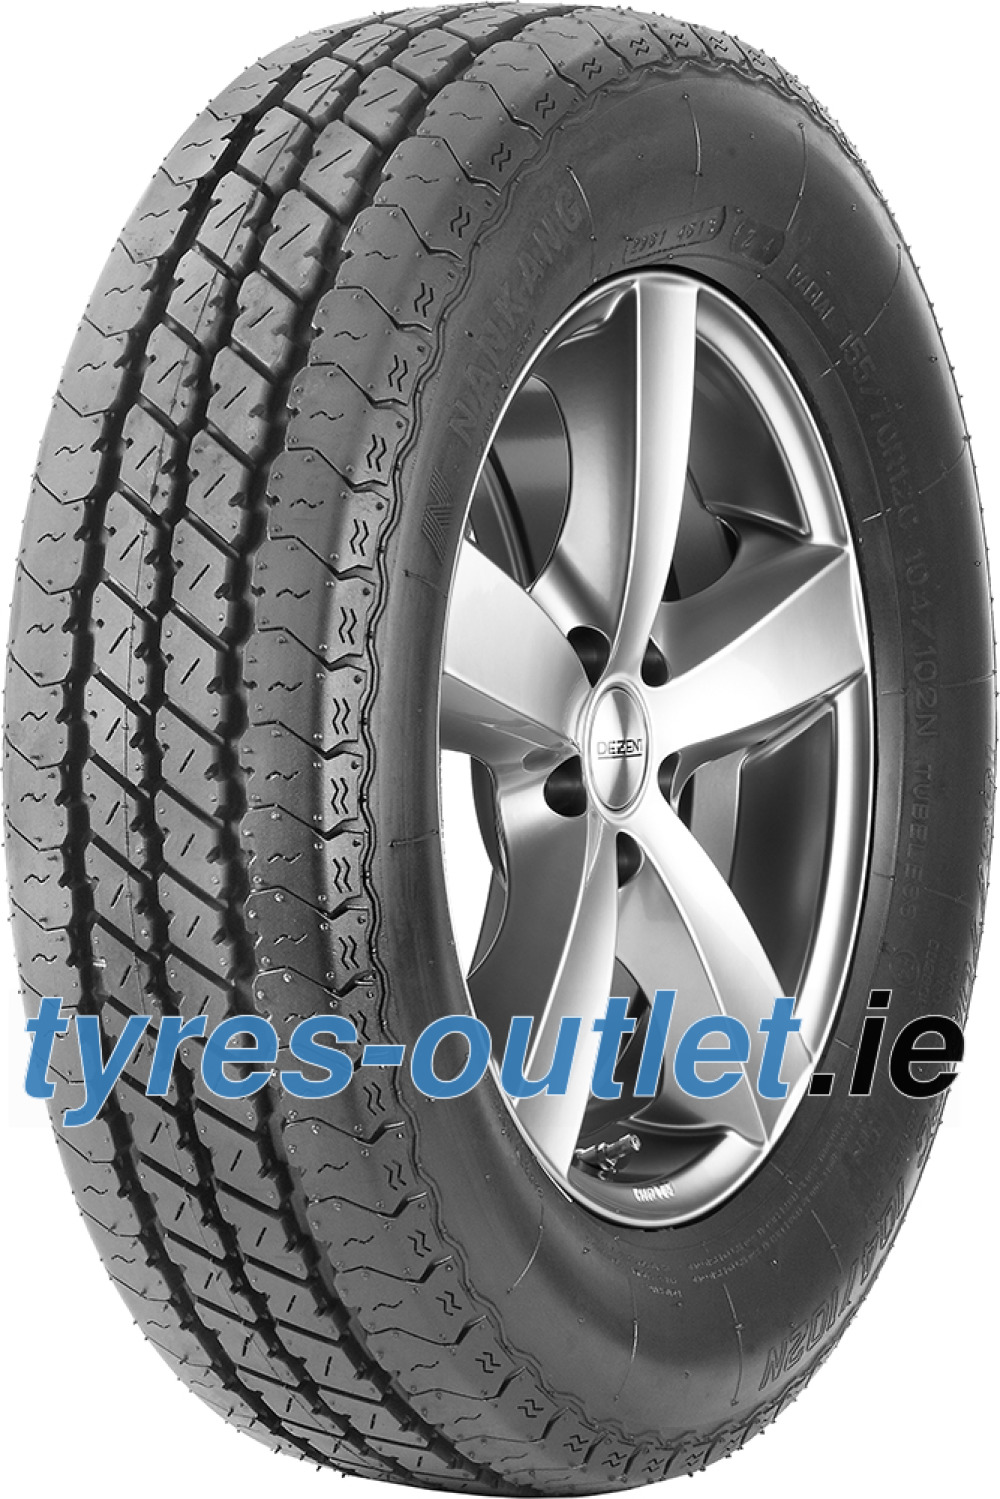 Nankang TR-10 ( 195/50 R13C 104/102N with rim protection (MFS) )